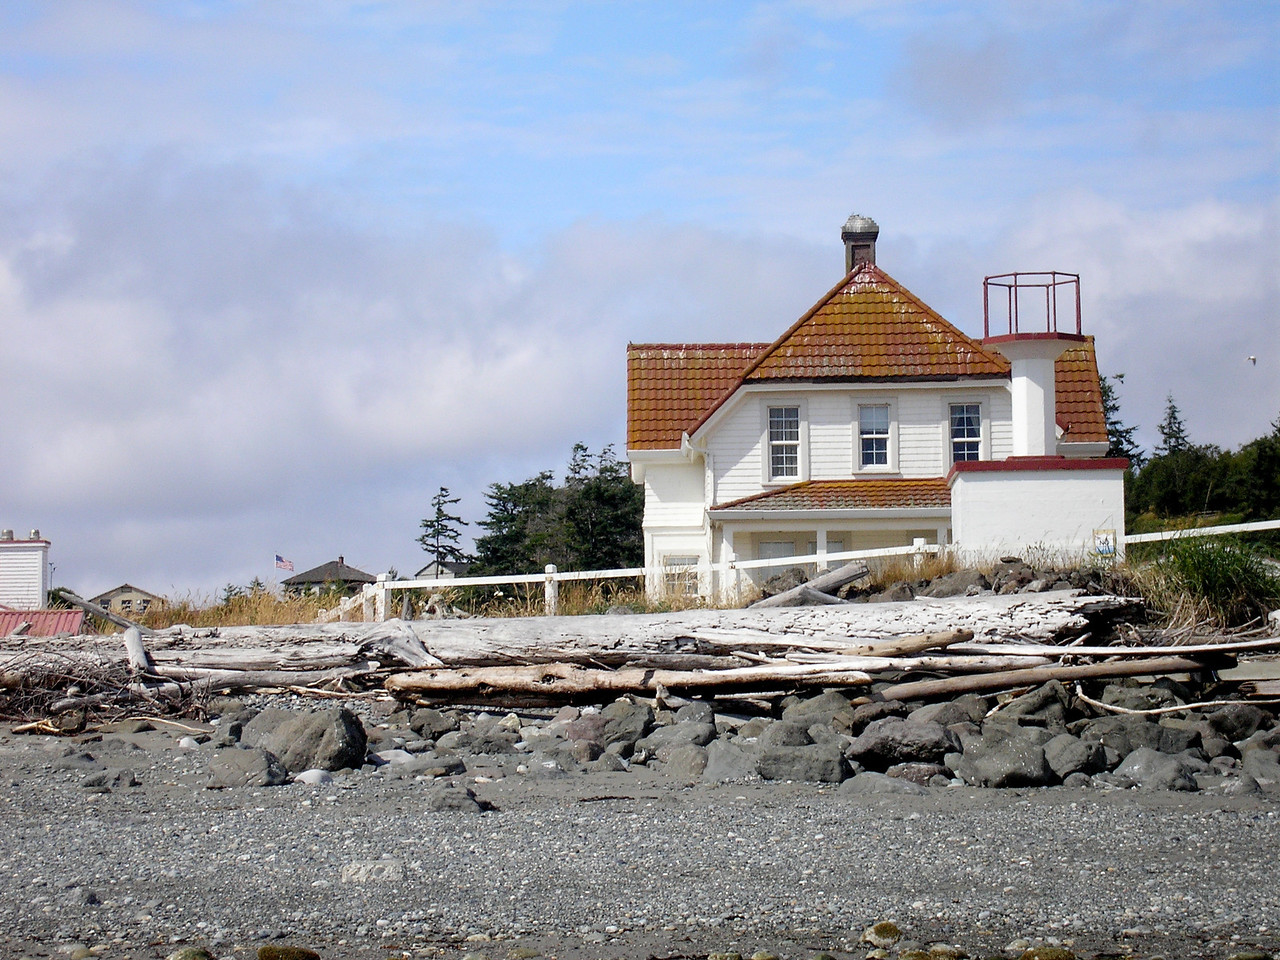 Marrowstone Point Light Keepers House.  The Light is the object on the right side of the photo.